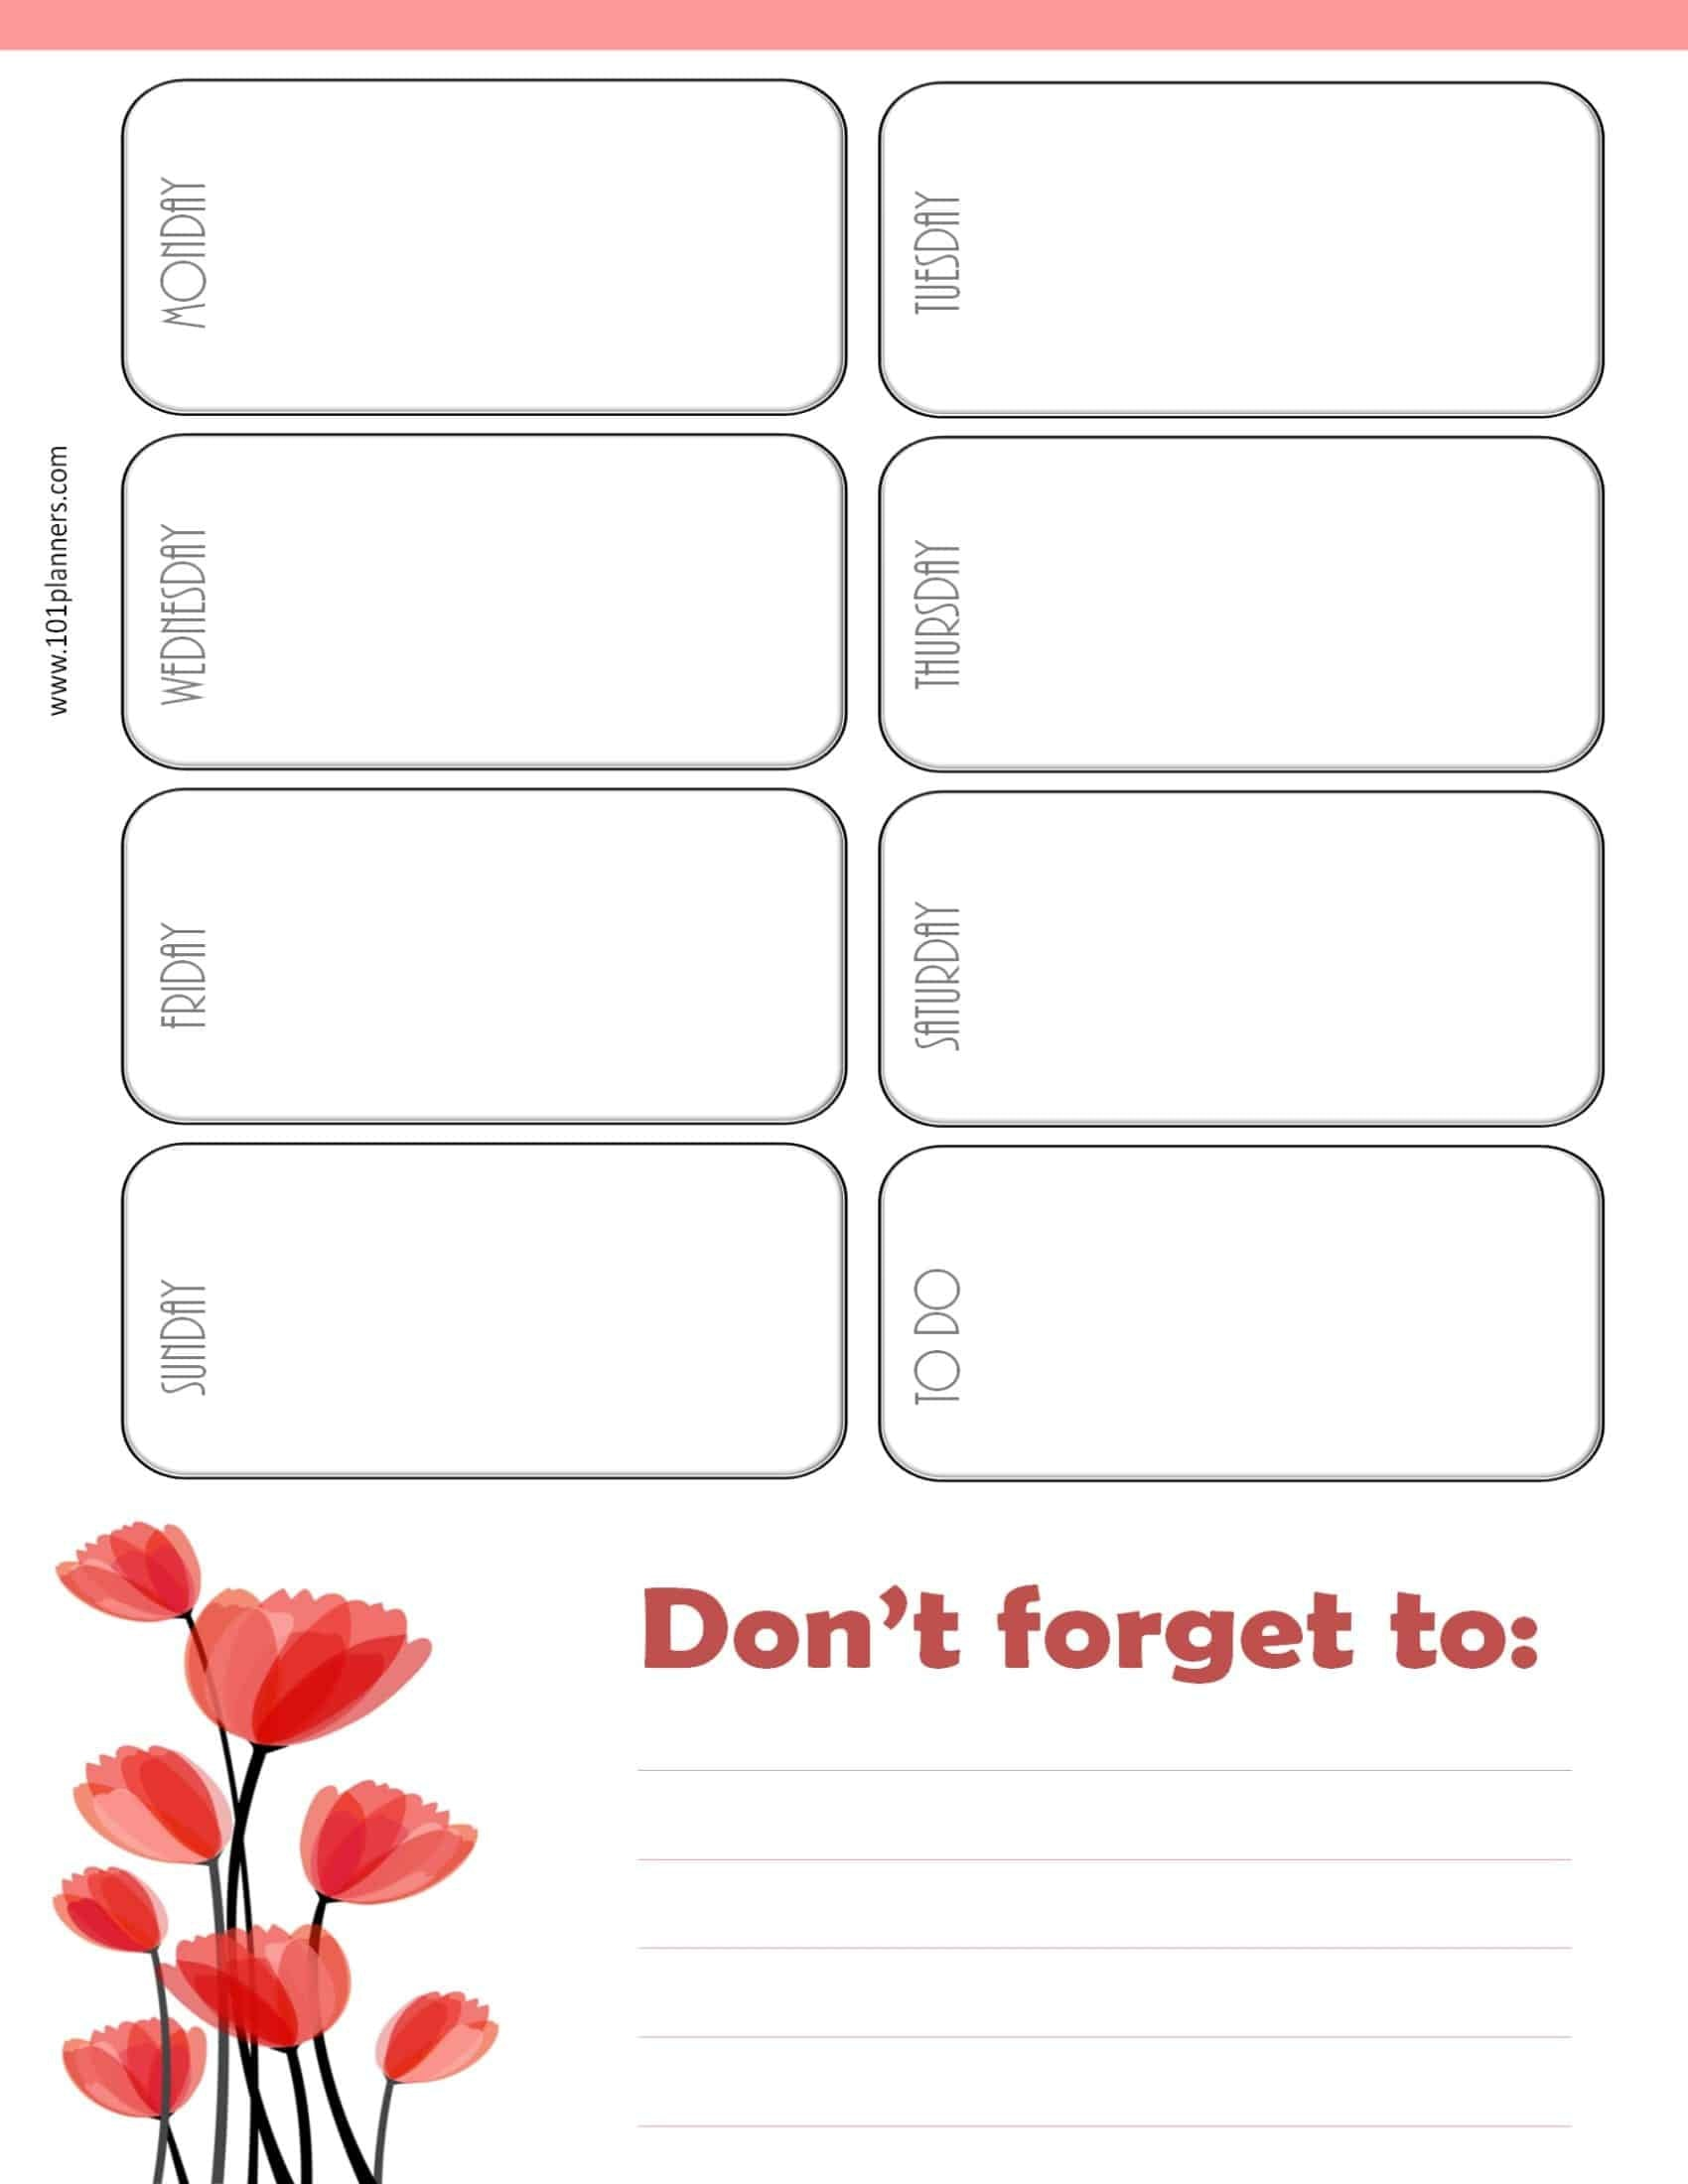 Planner with don't forget notes